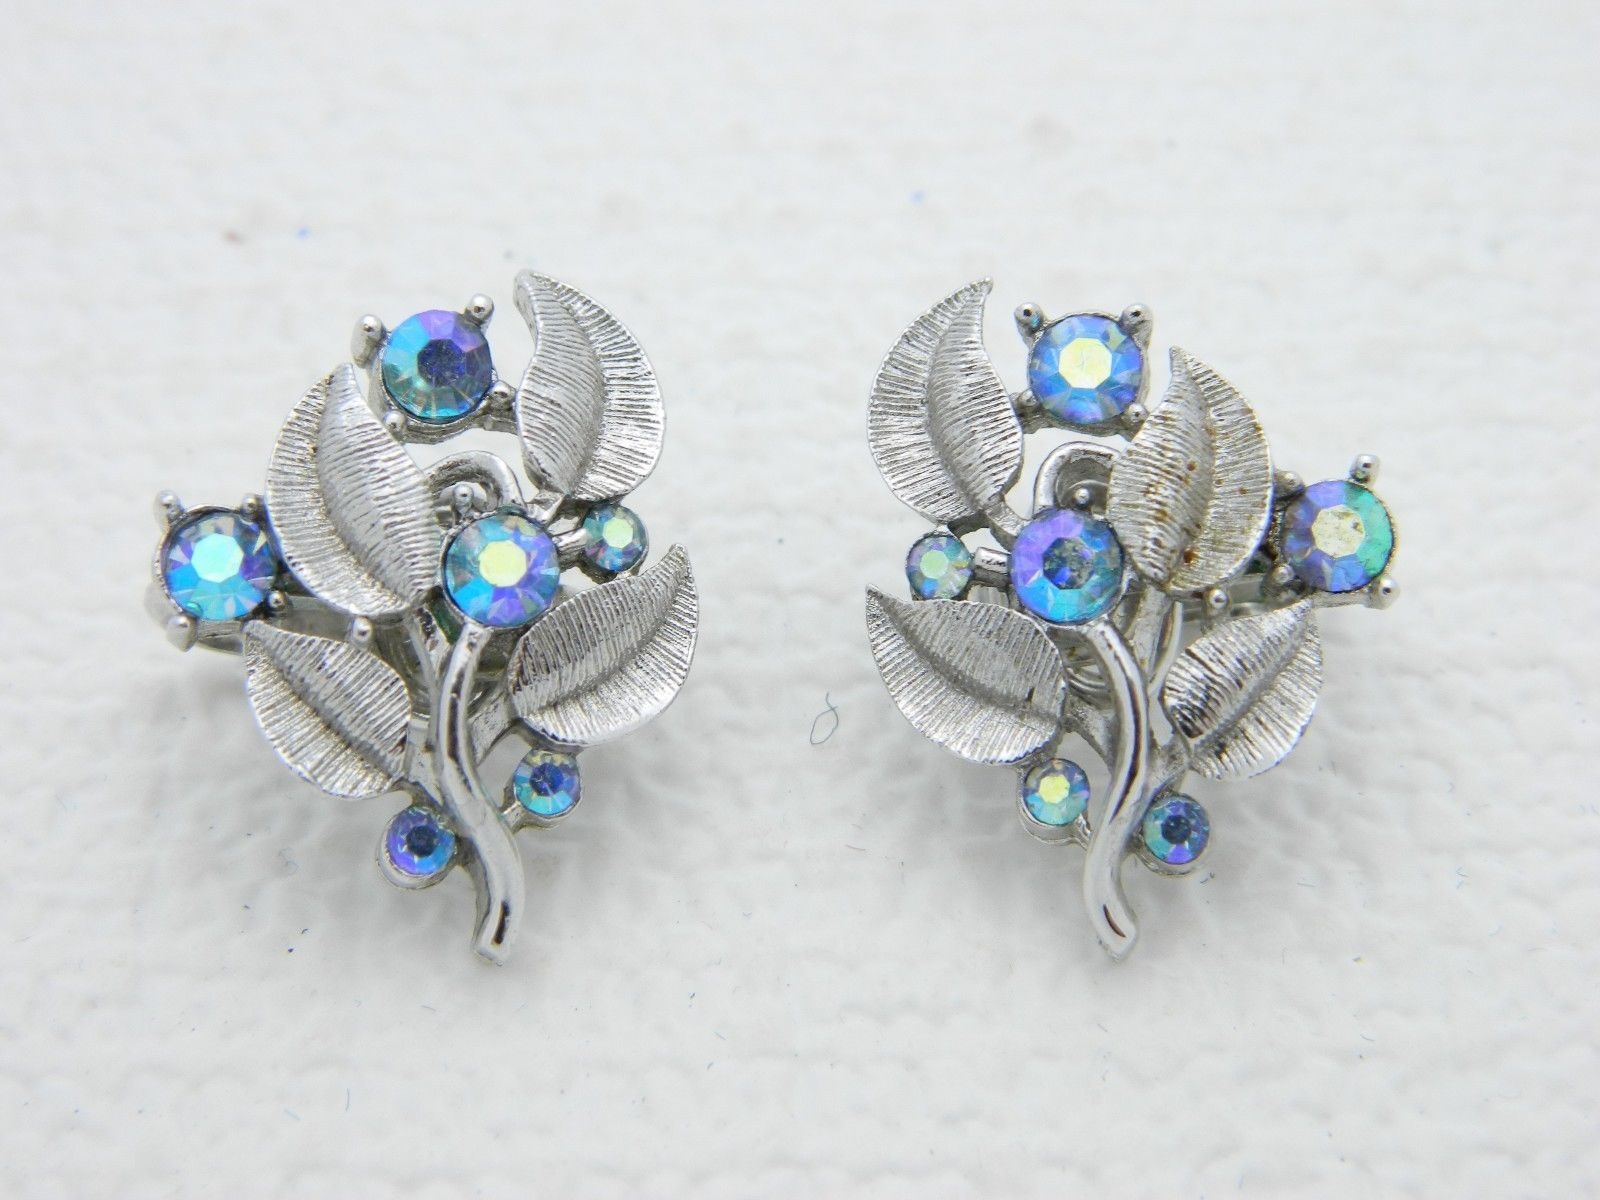 VTG CROWN TRIFARI Silver Tone Blue AB Rhinestone Flower Leaf Clip Earrings